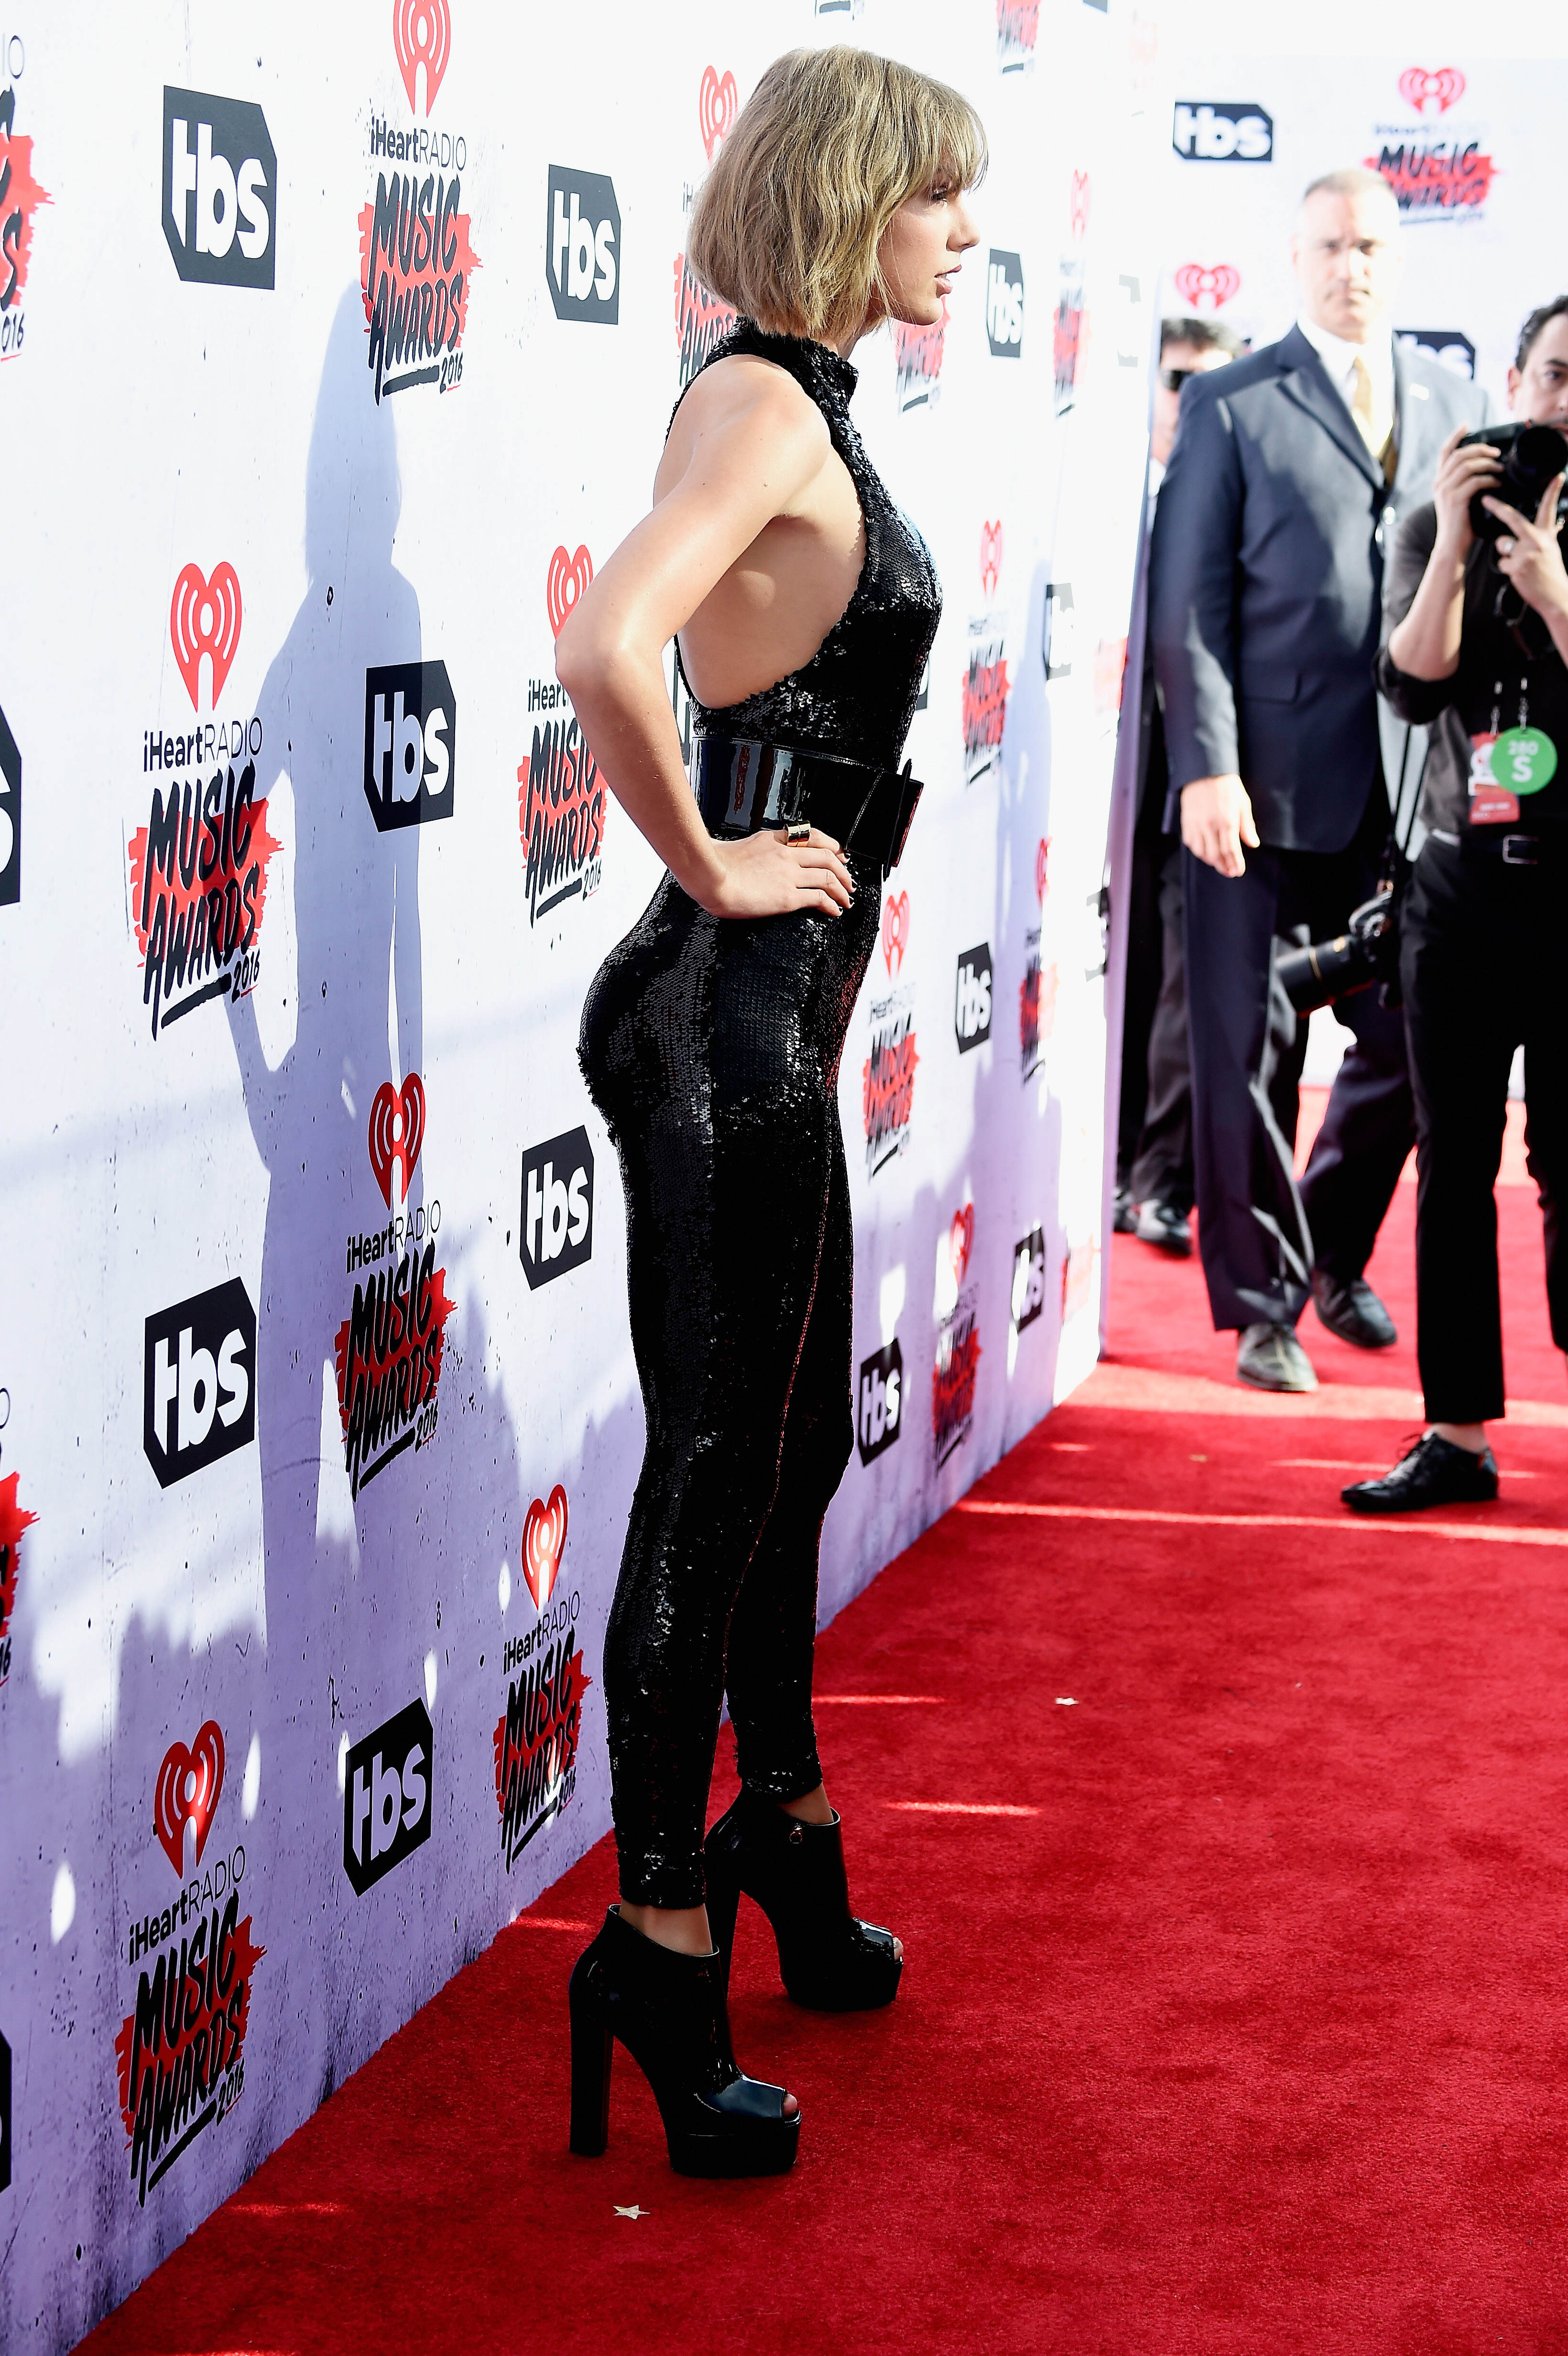 GettyImages 518970848 People Are Accusing Taylor Swift Of Getting Bum Implants Because Of This Photo